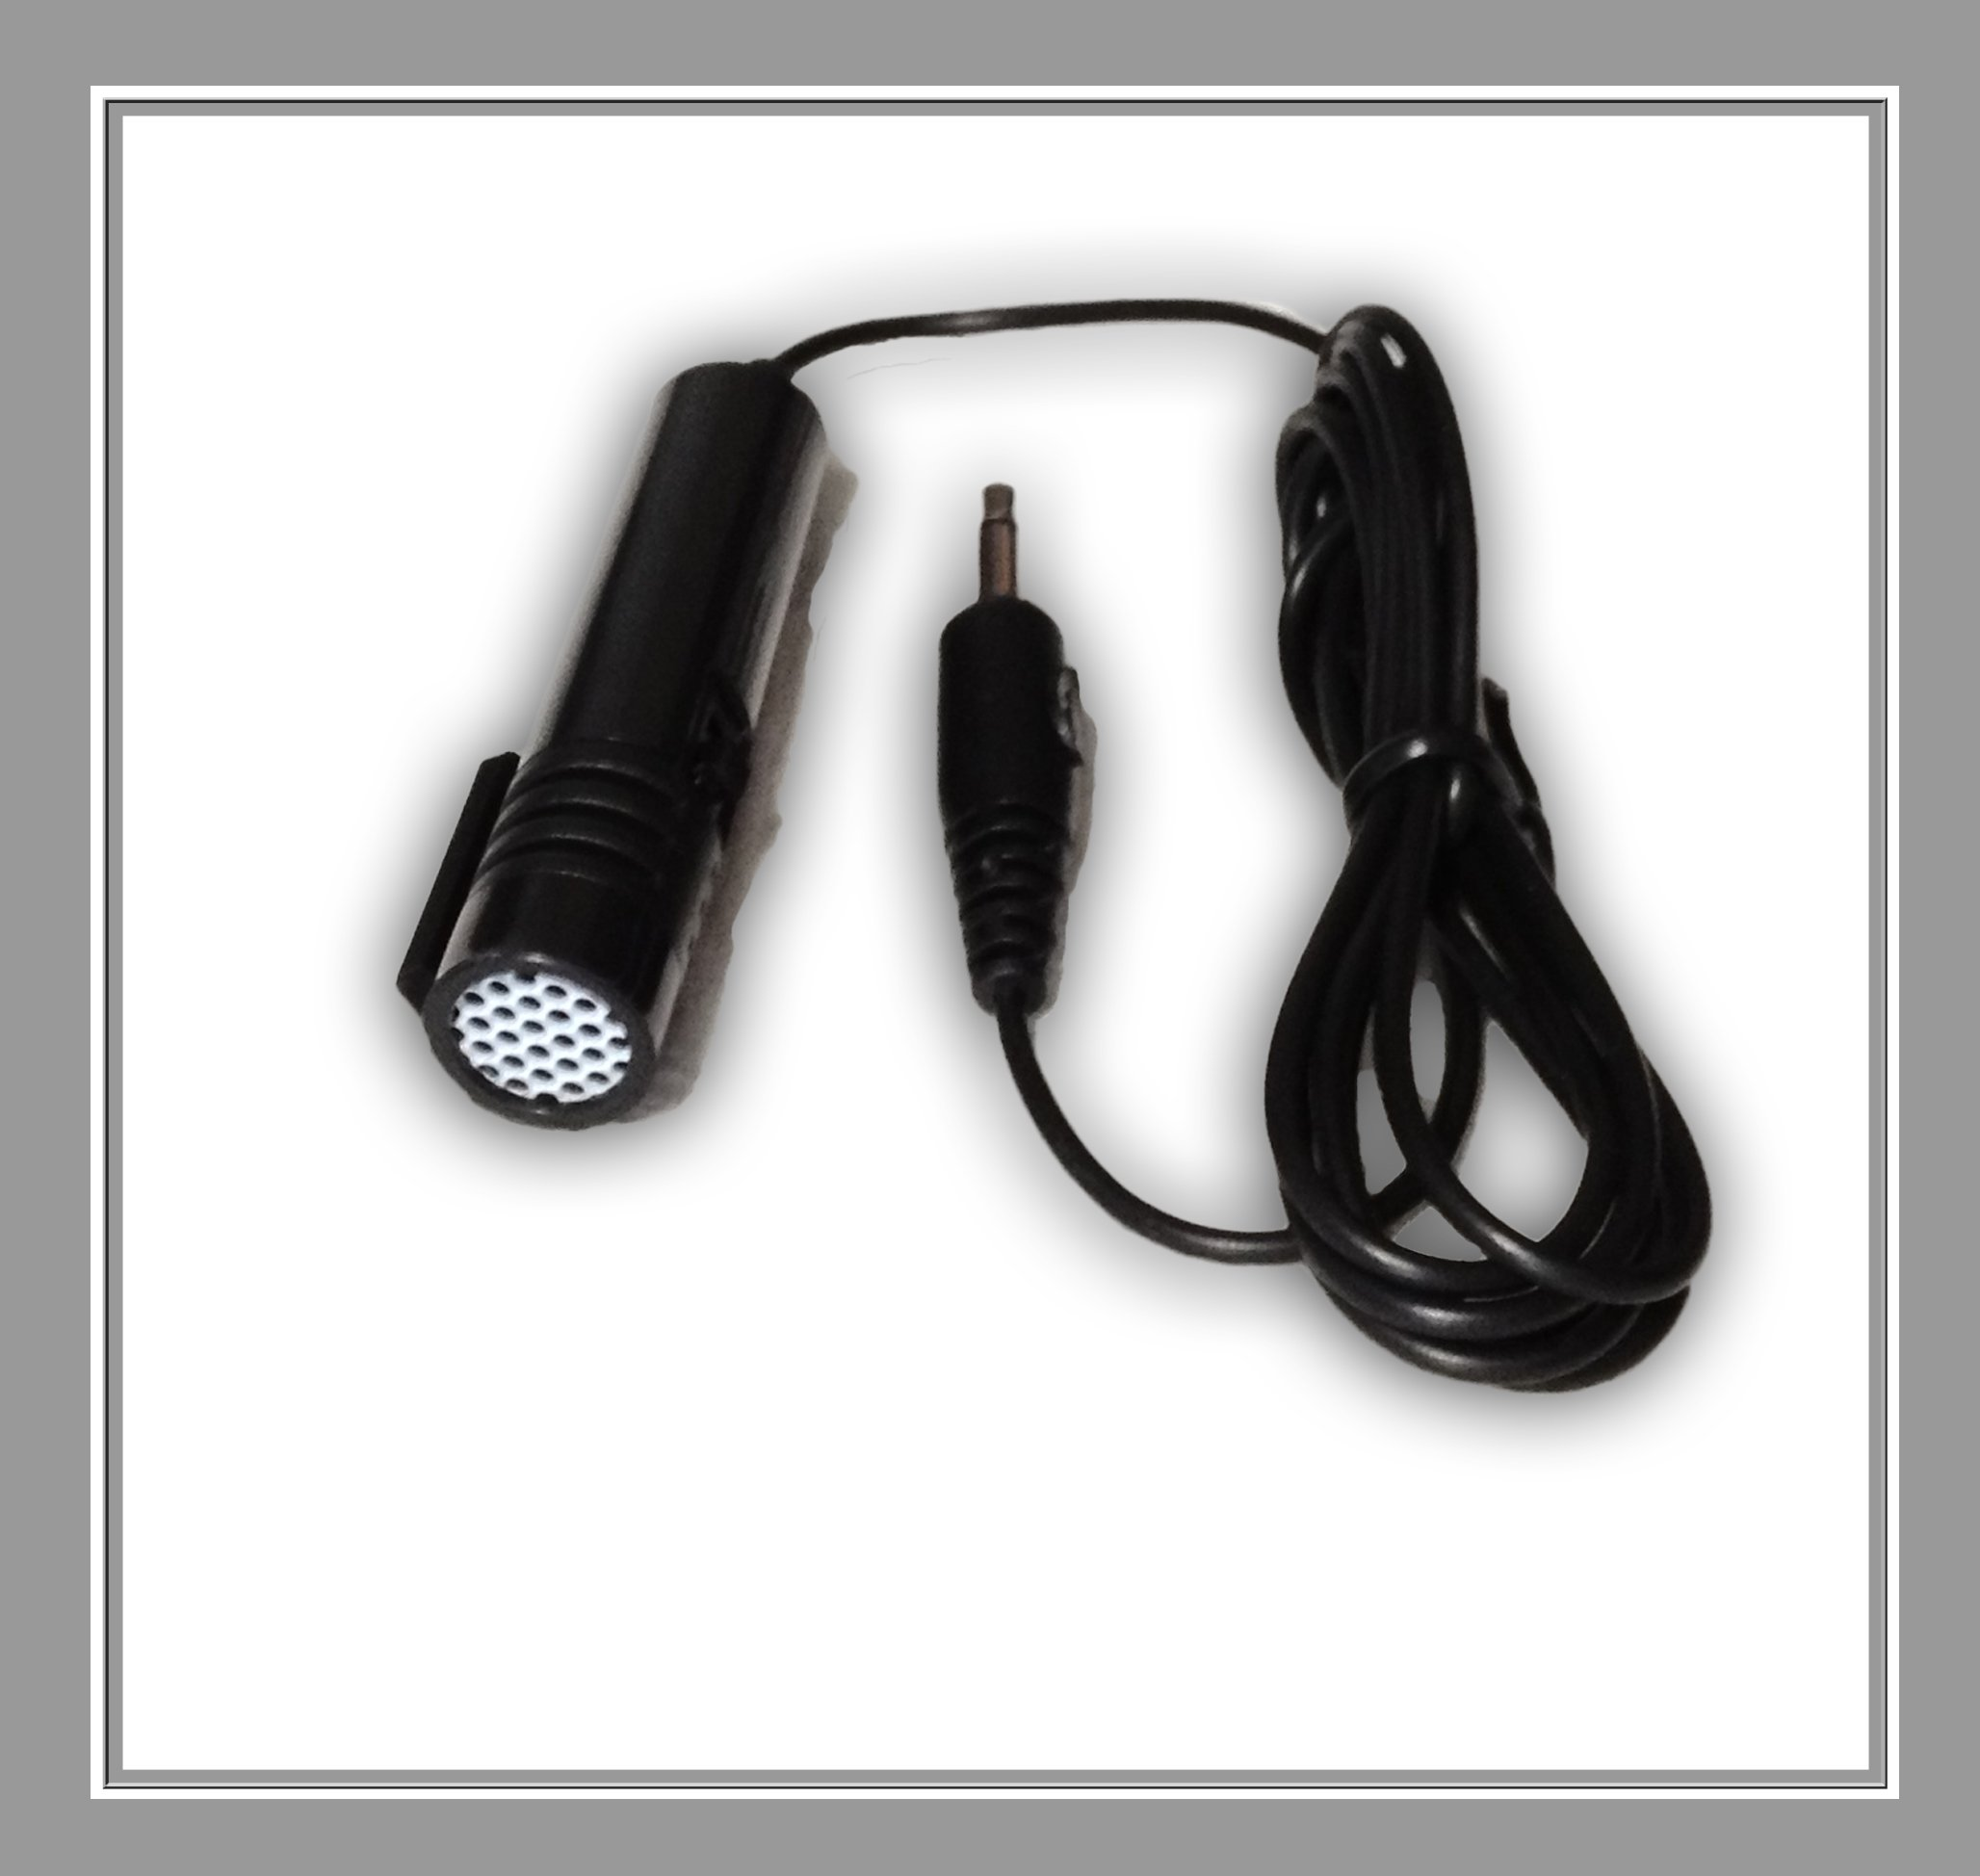 VoiceBooster Dual Tie-Clip Handheld Microphone with On/Off Switch for VoiceBooster (Aker) Voice Amplifiers by TK Products, LLC by Voice Booster